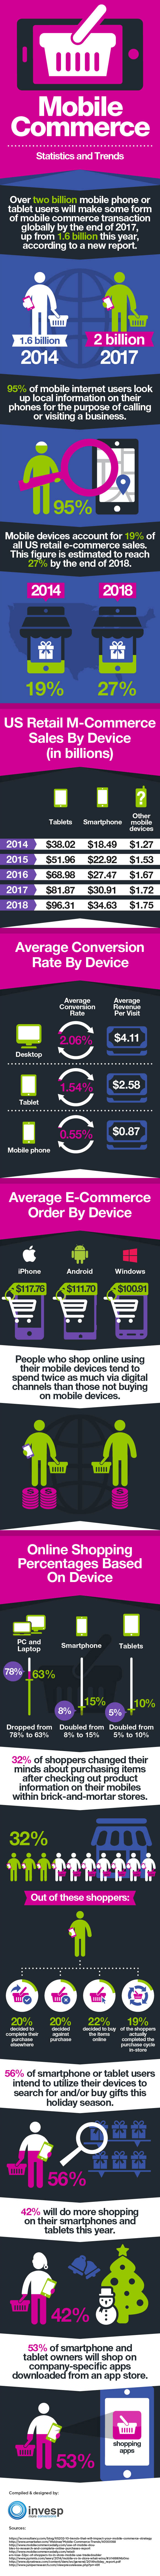 Mobile commerce Statistics and Trends